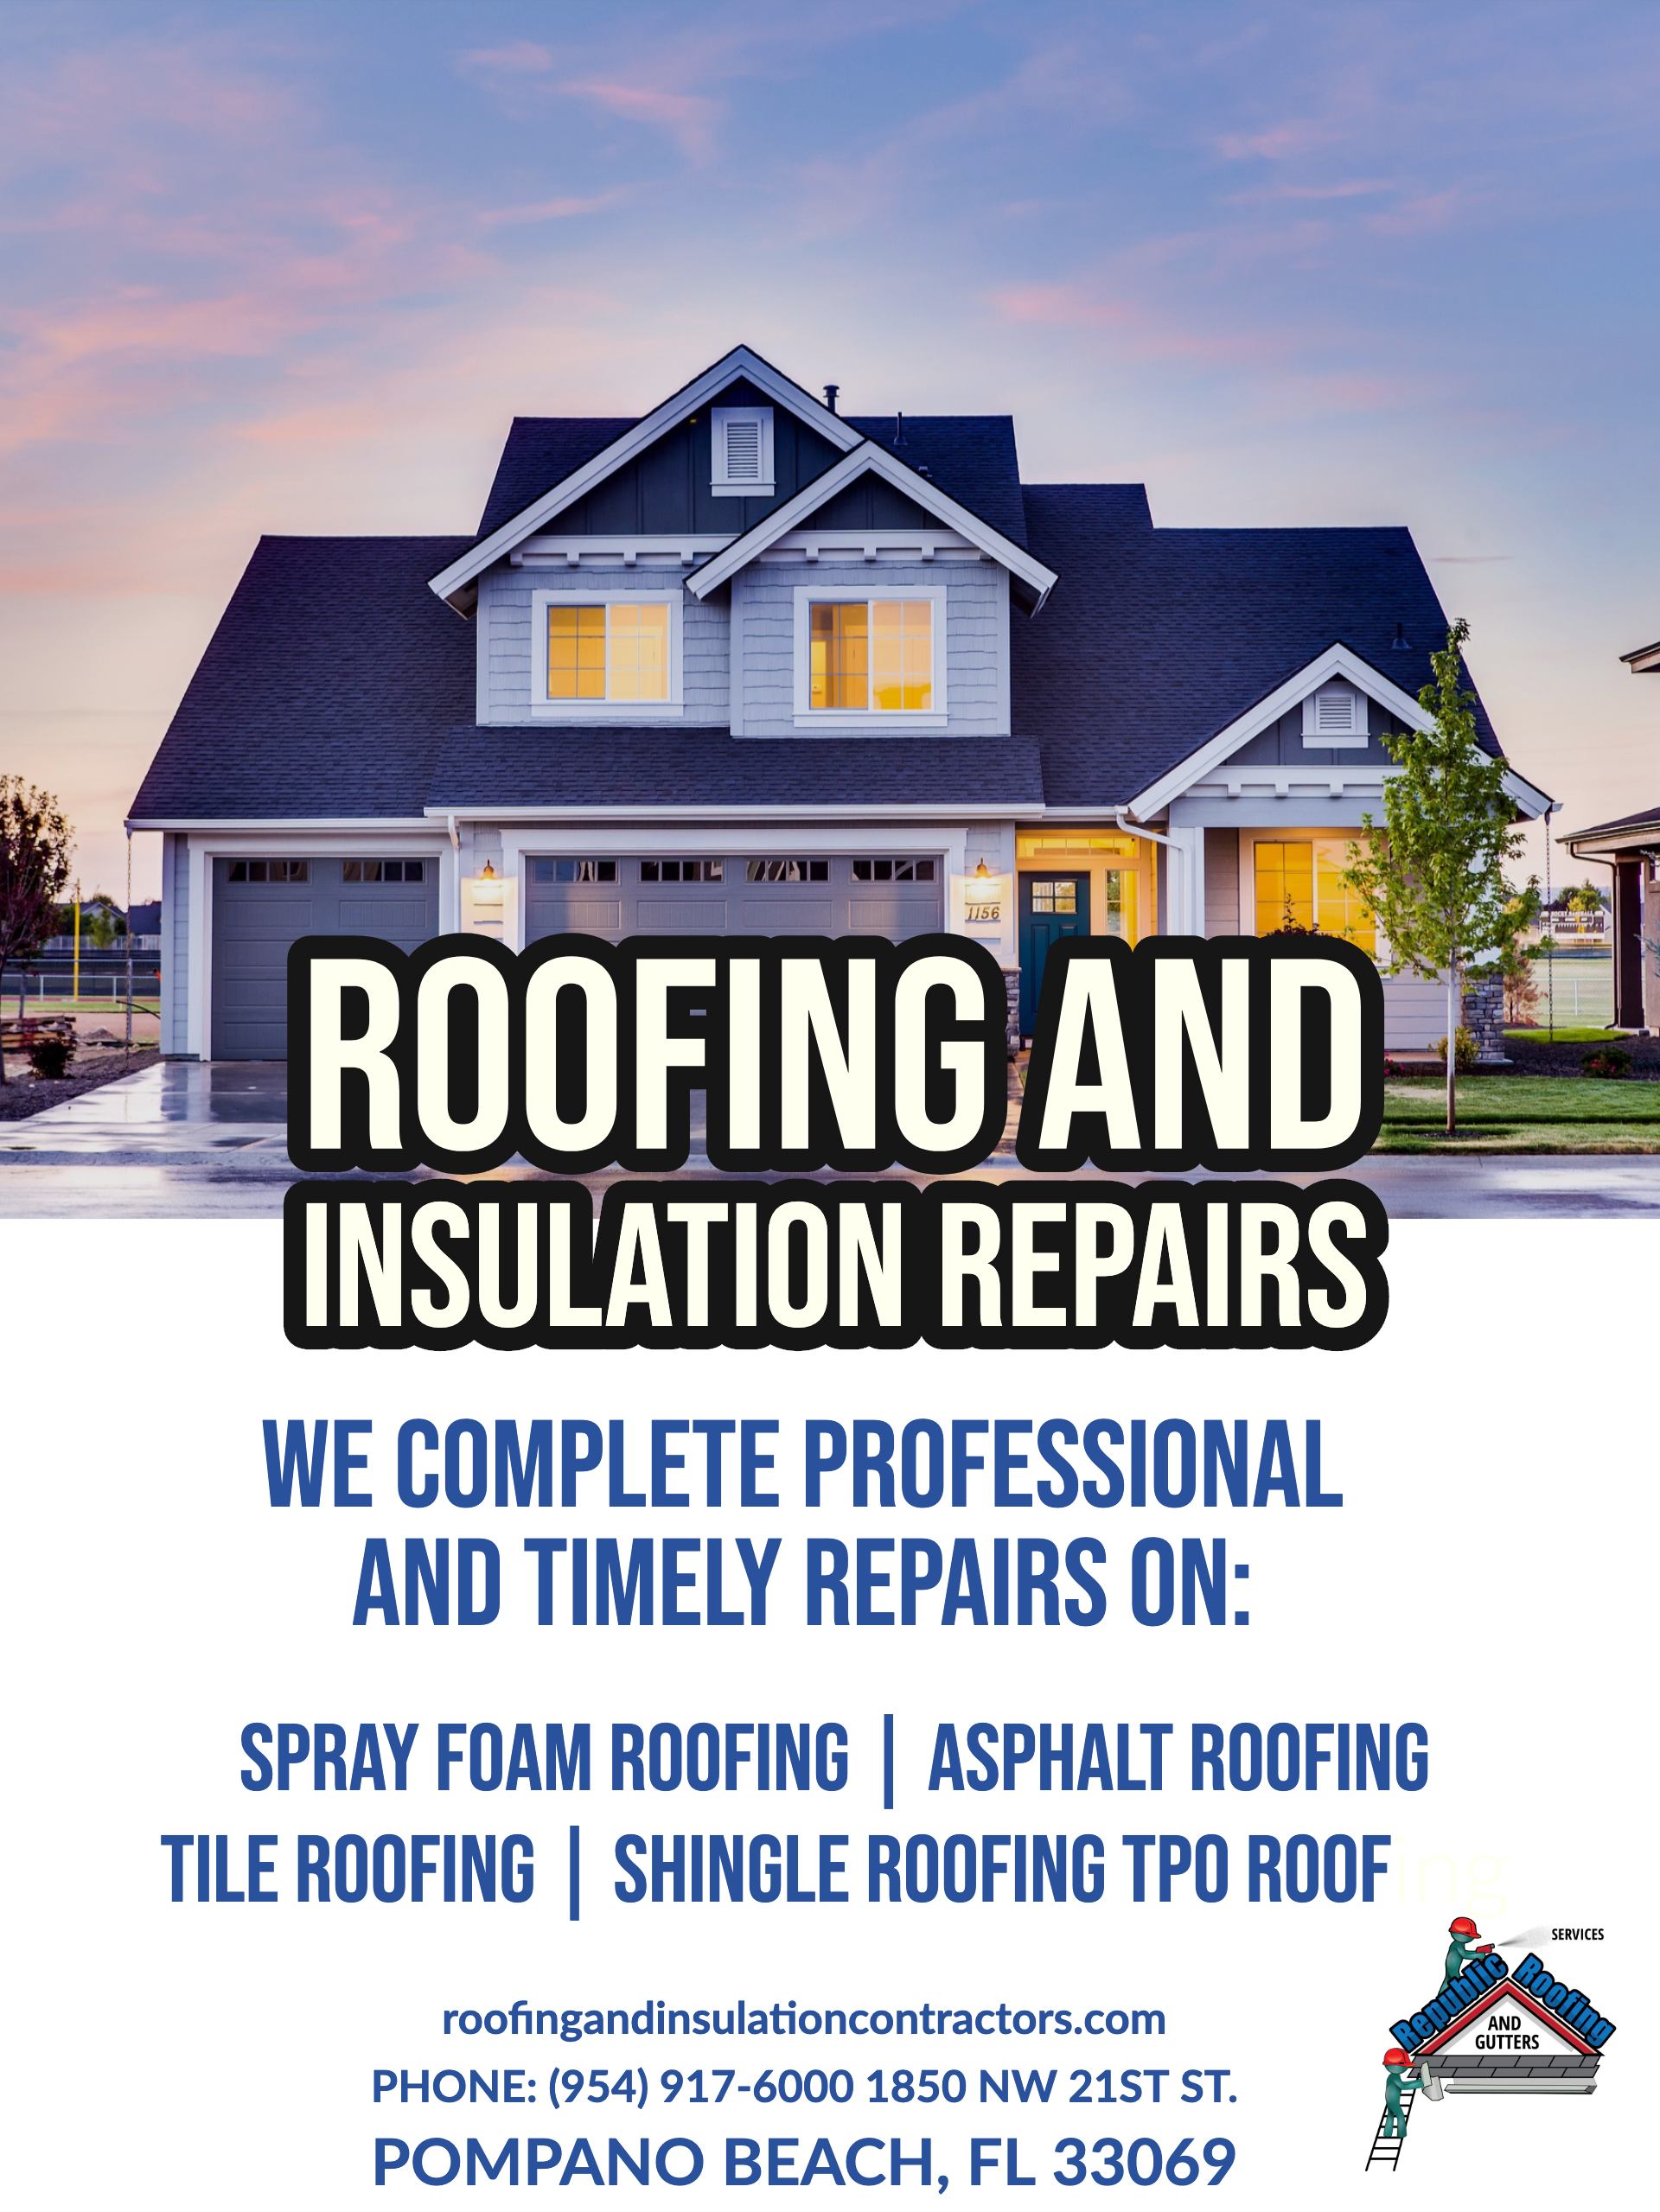 Roofing In South Florida Roofing Roof Repair Roofing Services